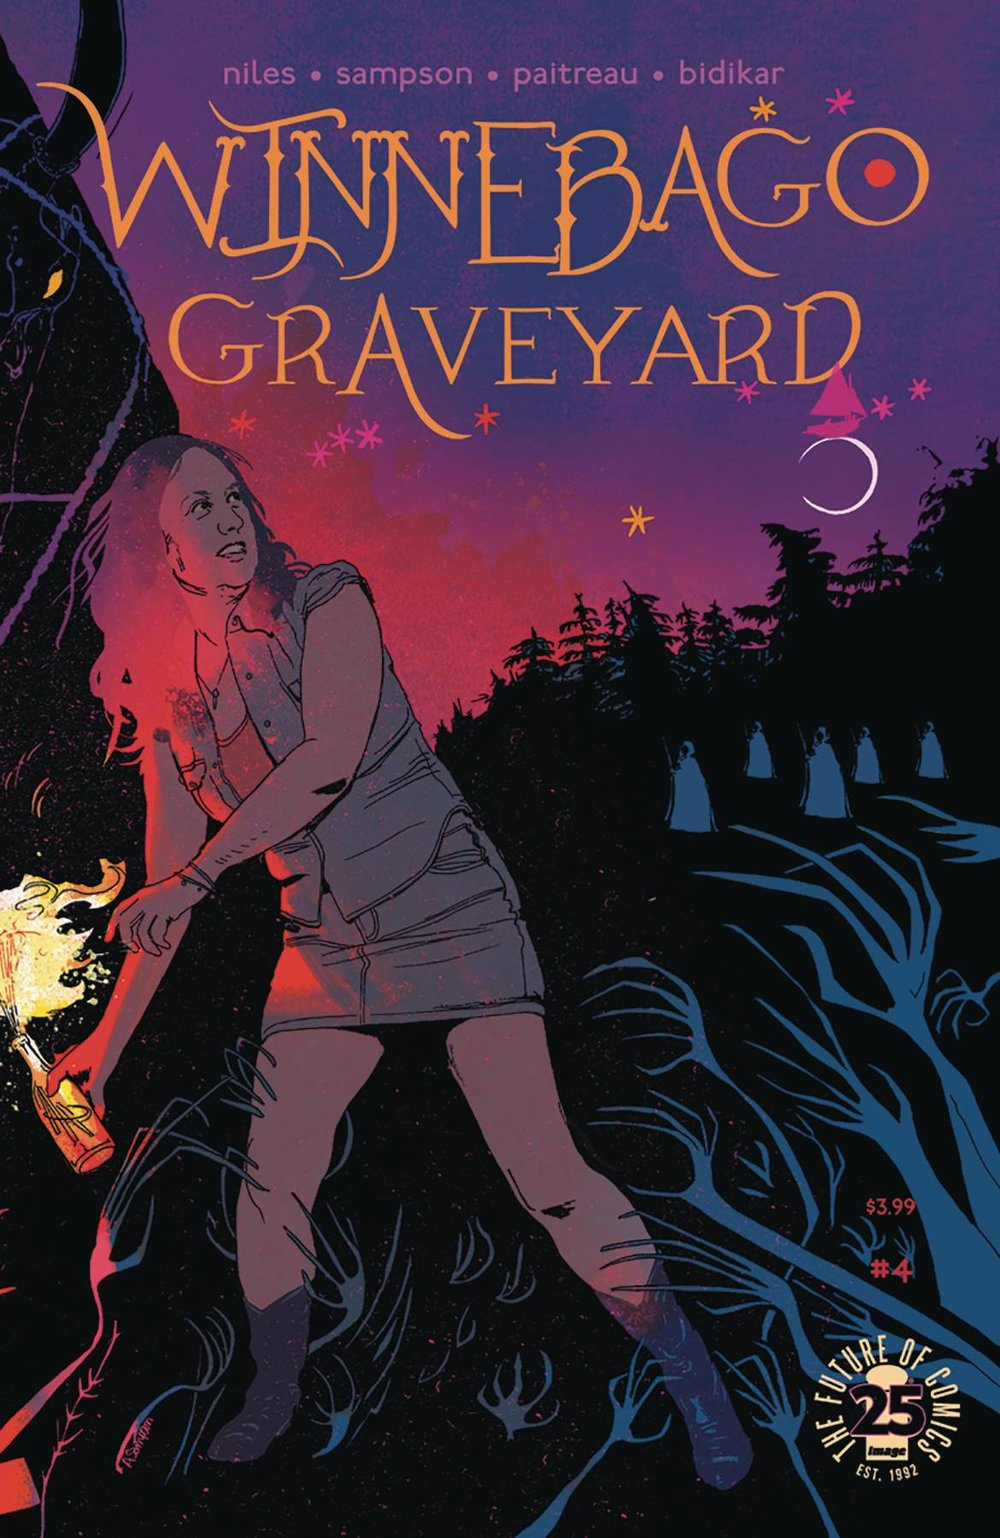 WINNEBAGO GRAVEYARD 4 of 4 CVR A SAMPSON.jpg